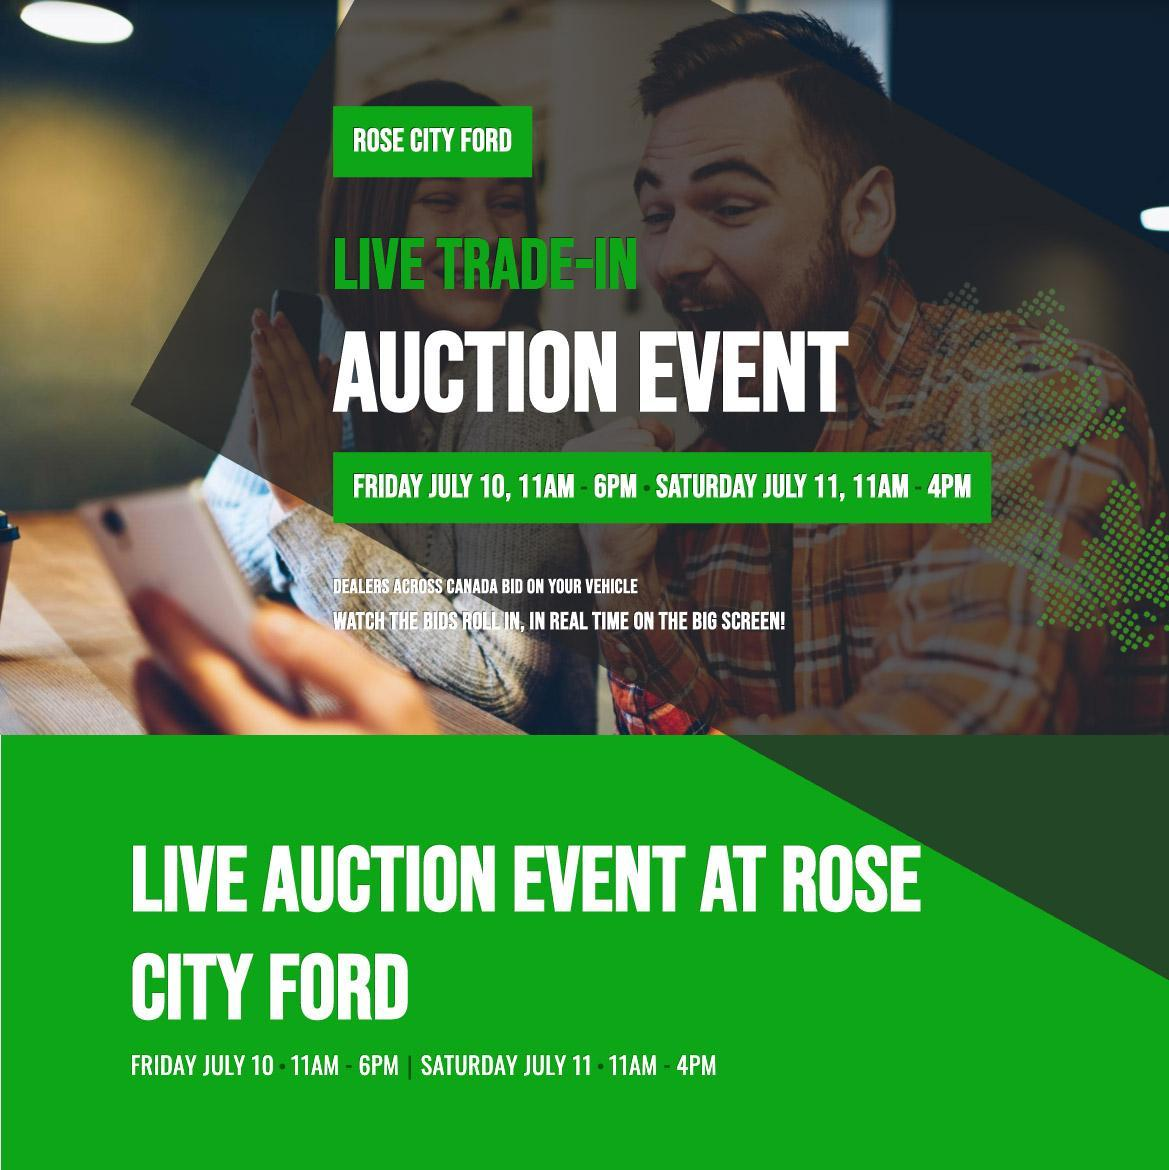 TradeRev - LIVE AUCTION AT ROSE CITY FORD